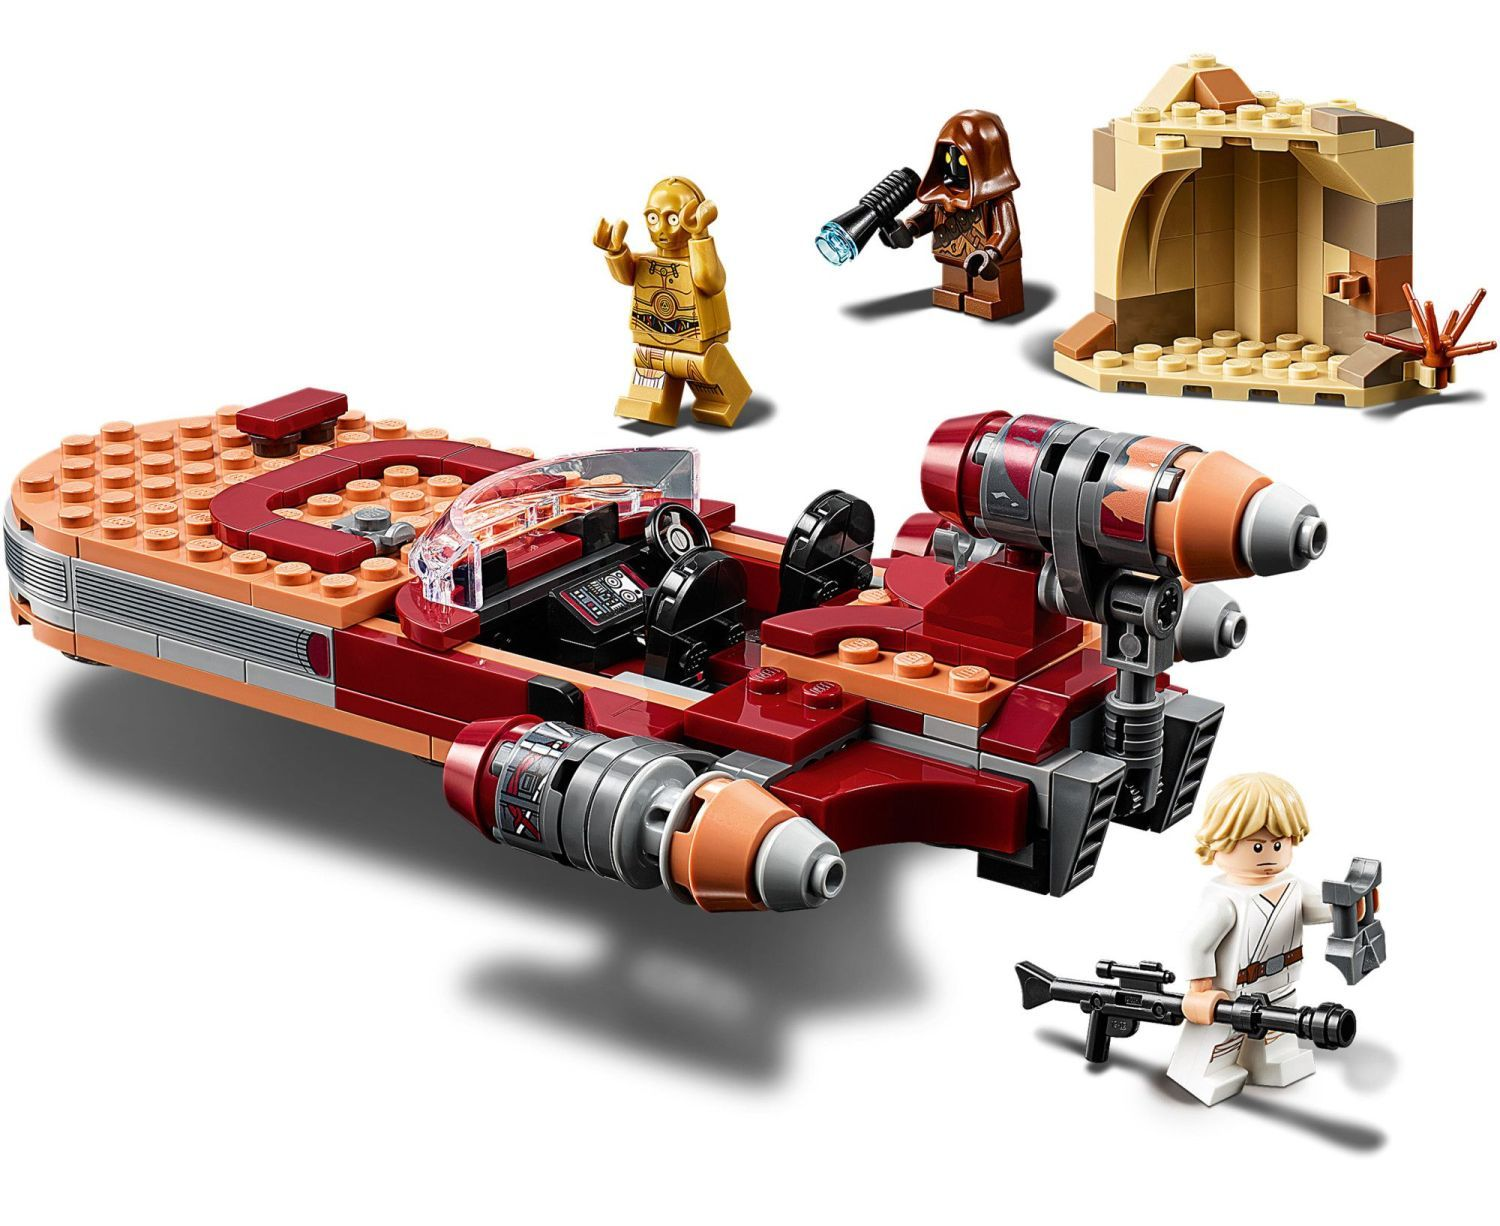 Конструктор Lego Star Wars - Luke Skywalker's Landspeeder (75271) - 4